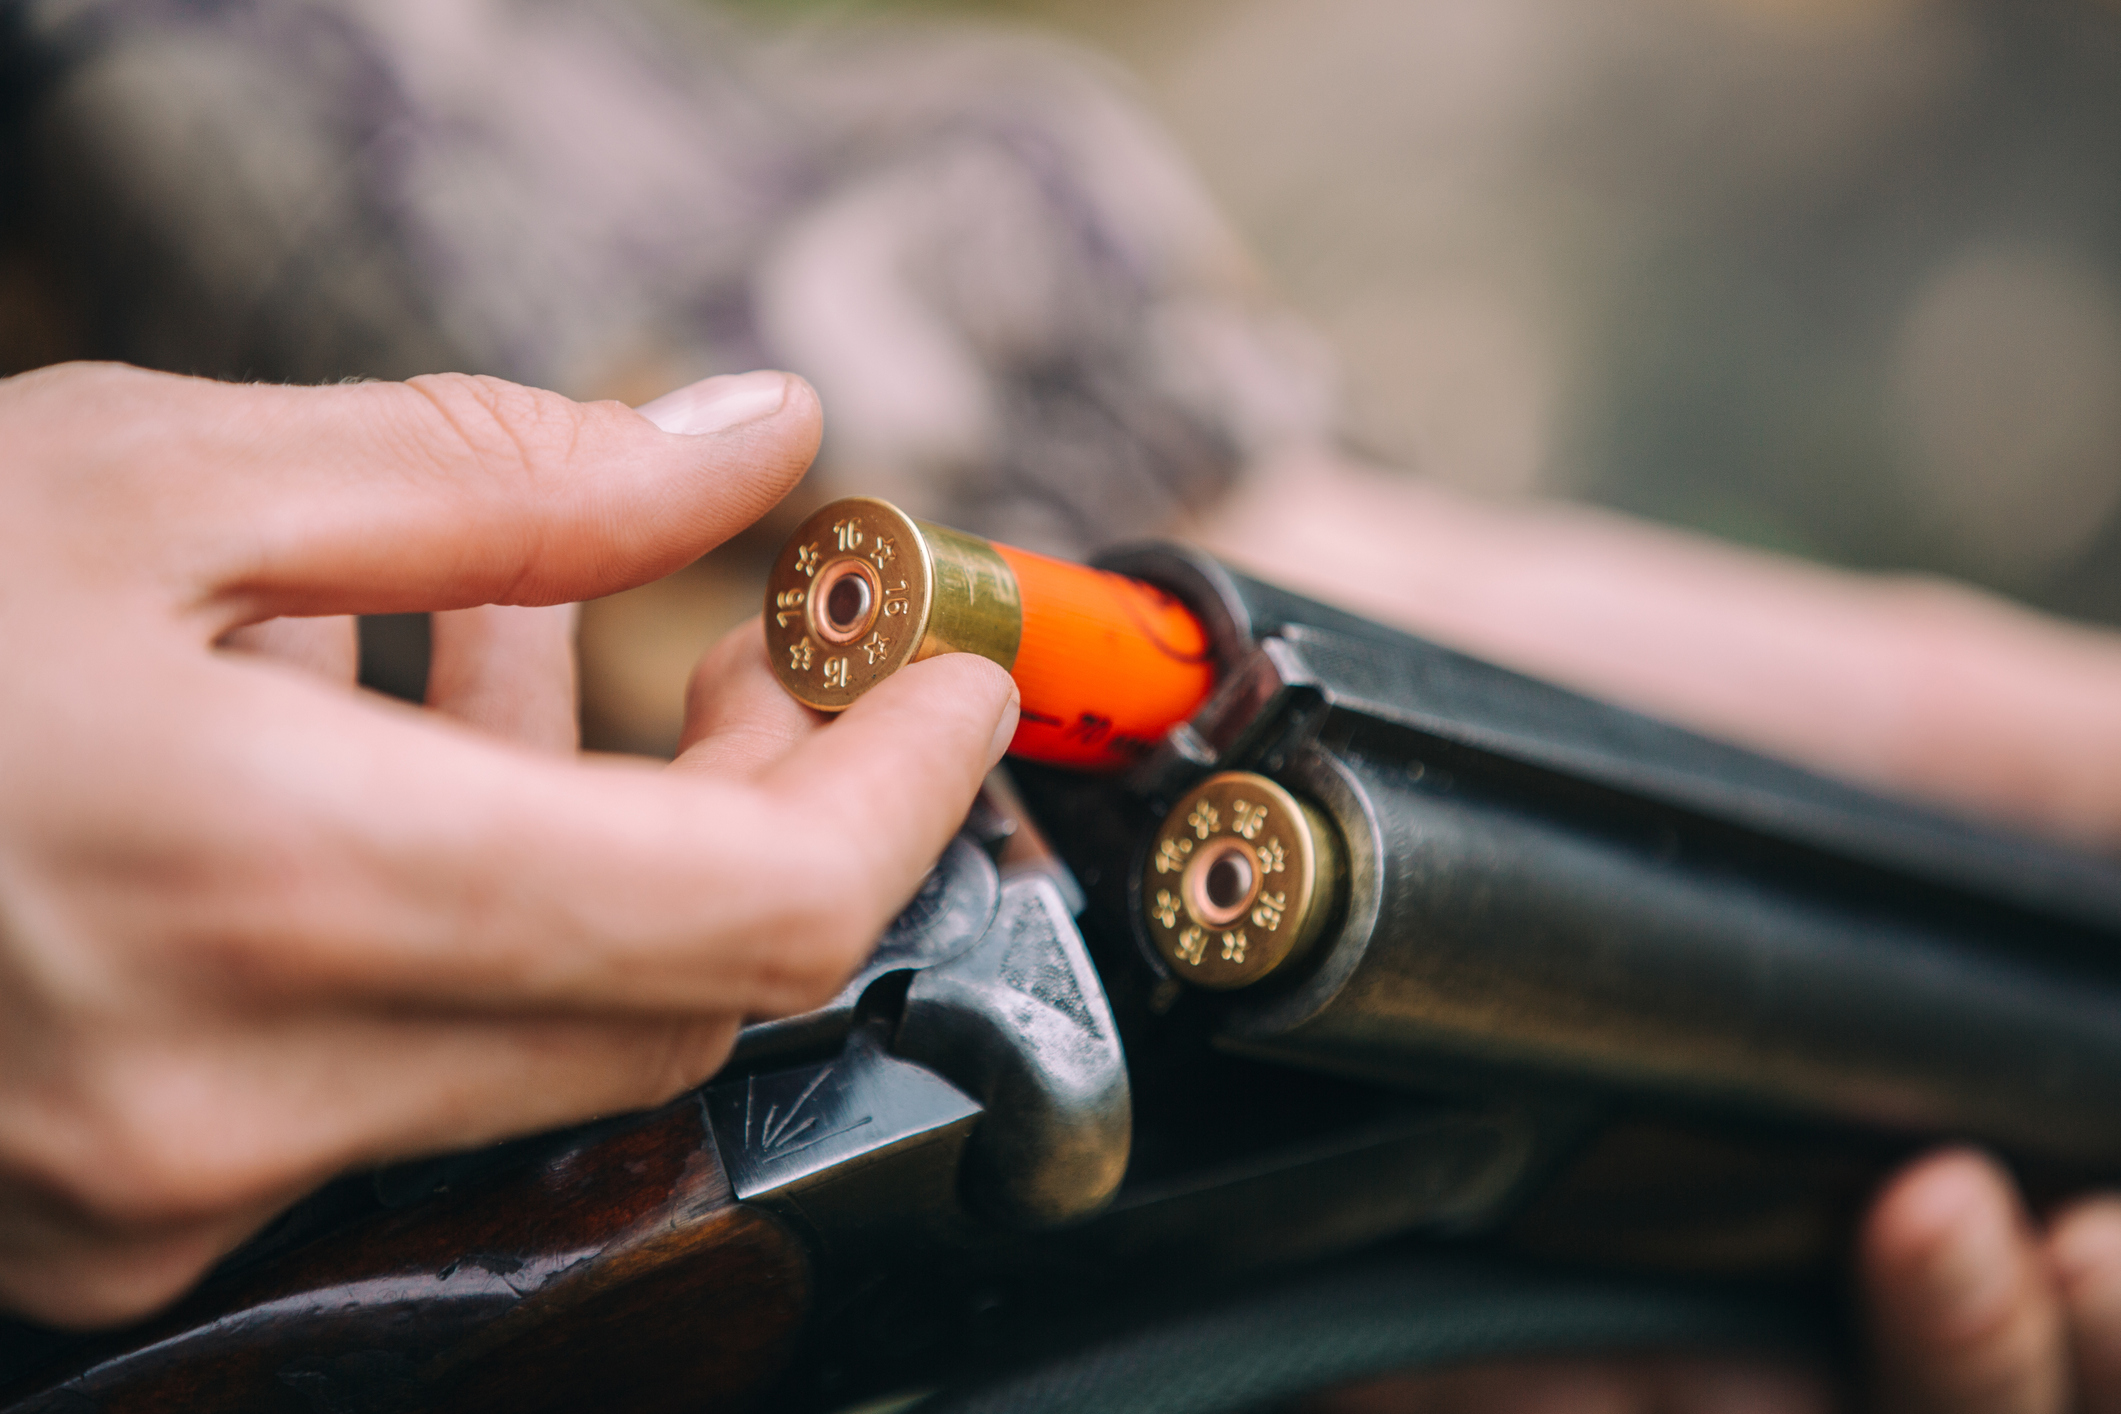 A man loading shotgun shells into a double barrel shotgun